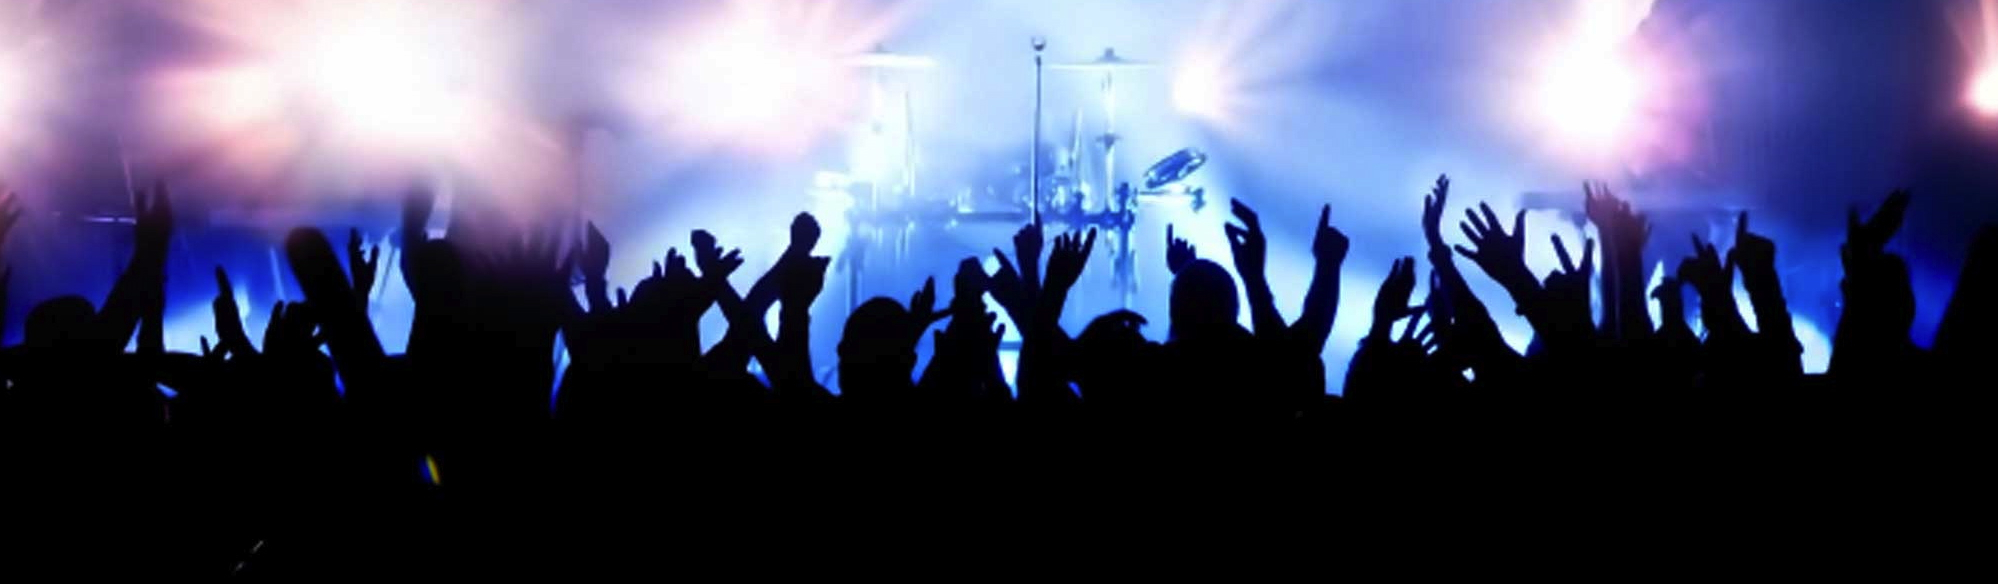 concert-crowd-crop